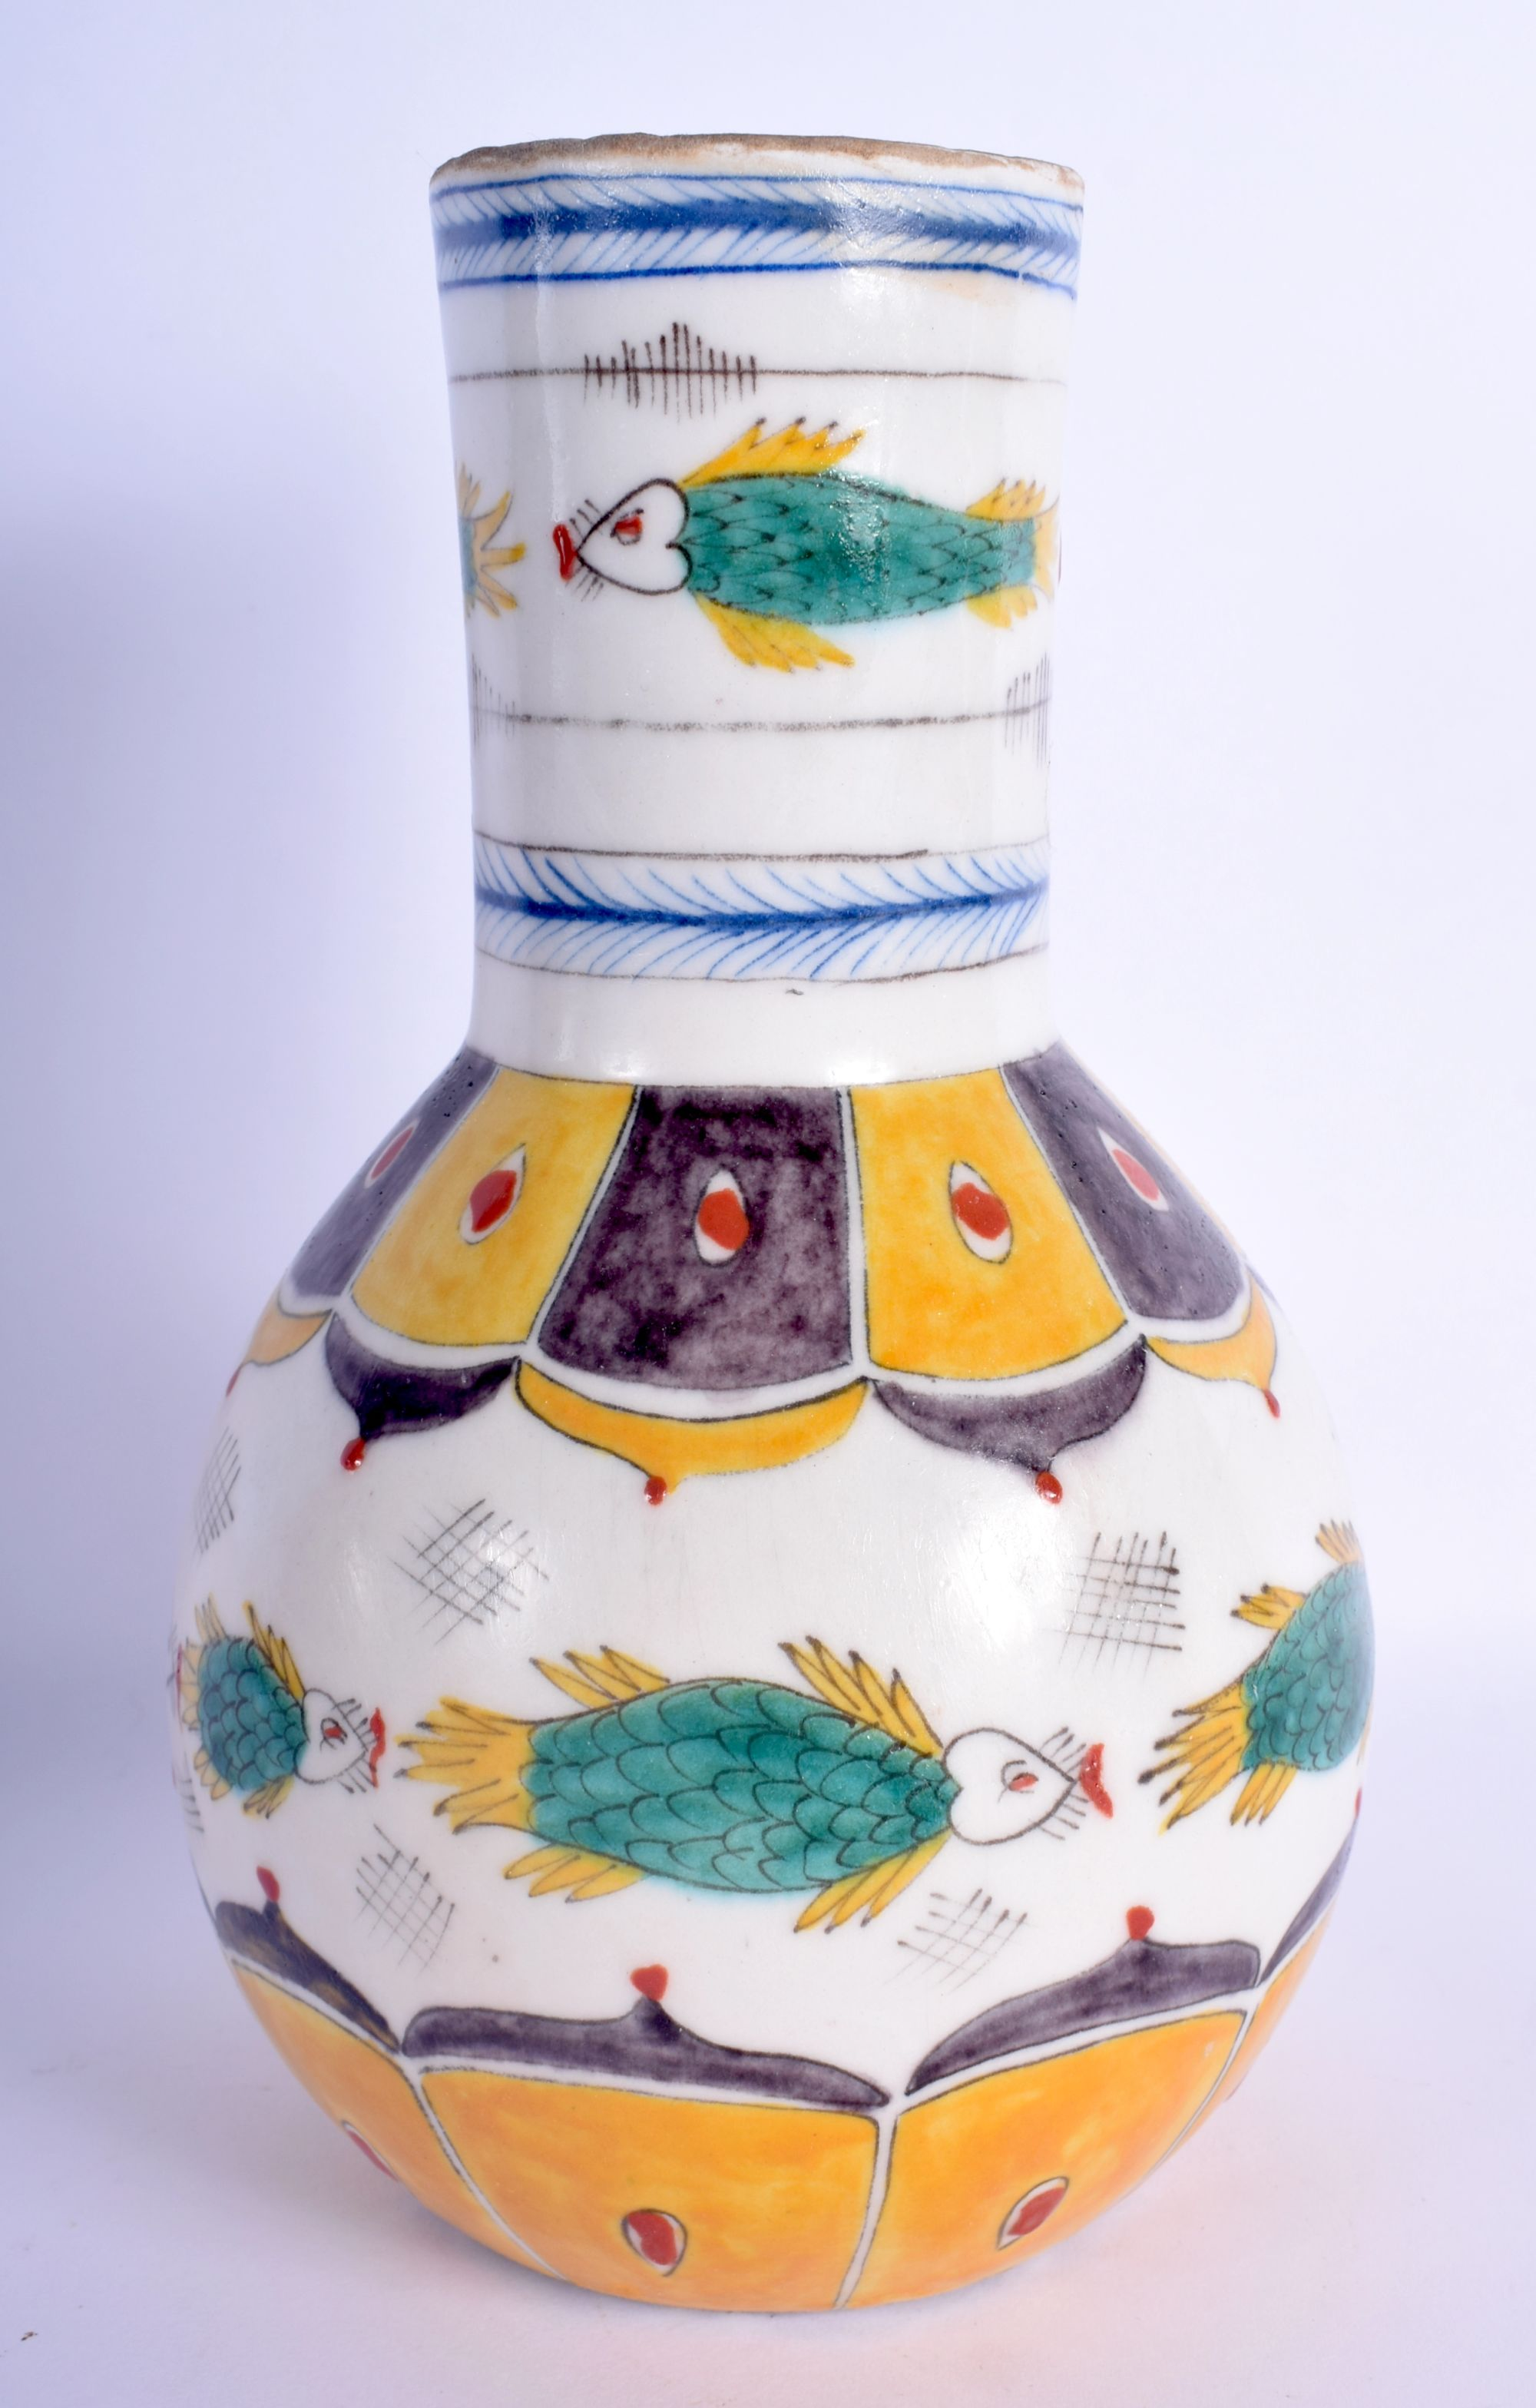 A TURKISH OTTOMAN KUTAHYA FAIENCE TYPE VASE painted with floral sprays. 22 cm high.